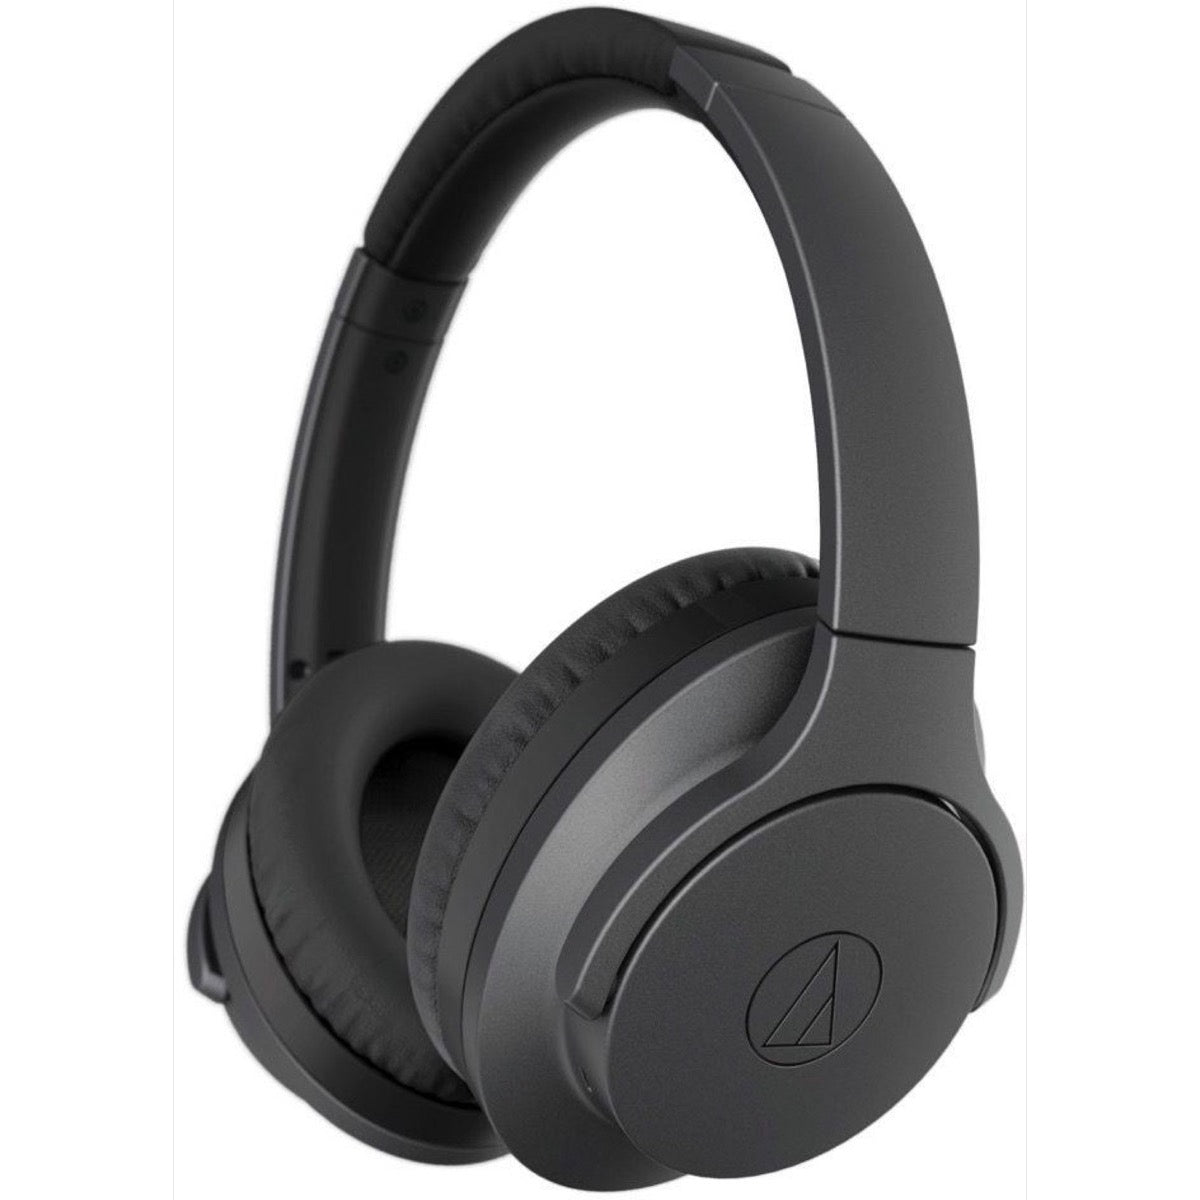 Audio-Technica ATH-ANC700BT Wireless Bluetooth Headphones, Black